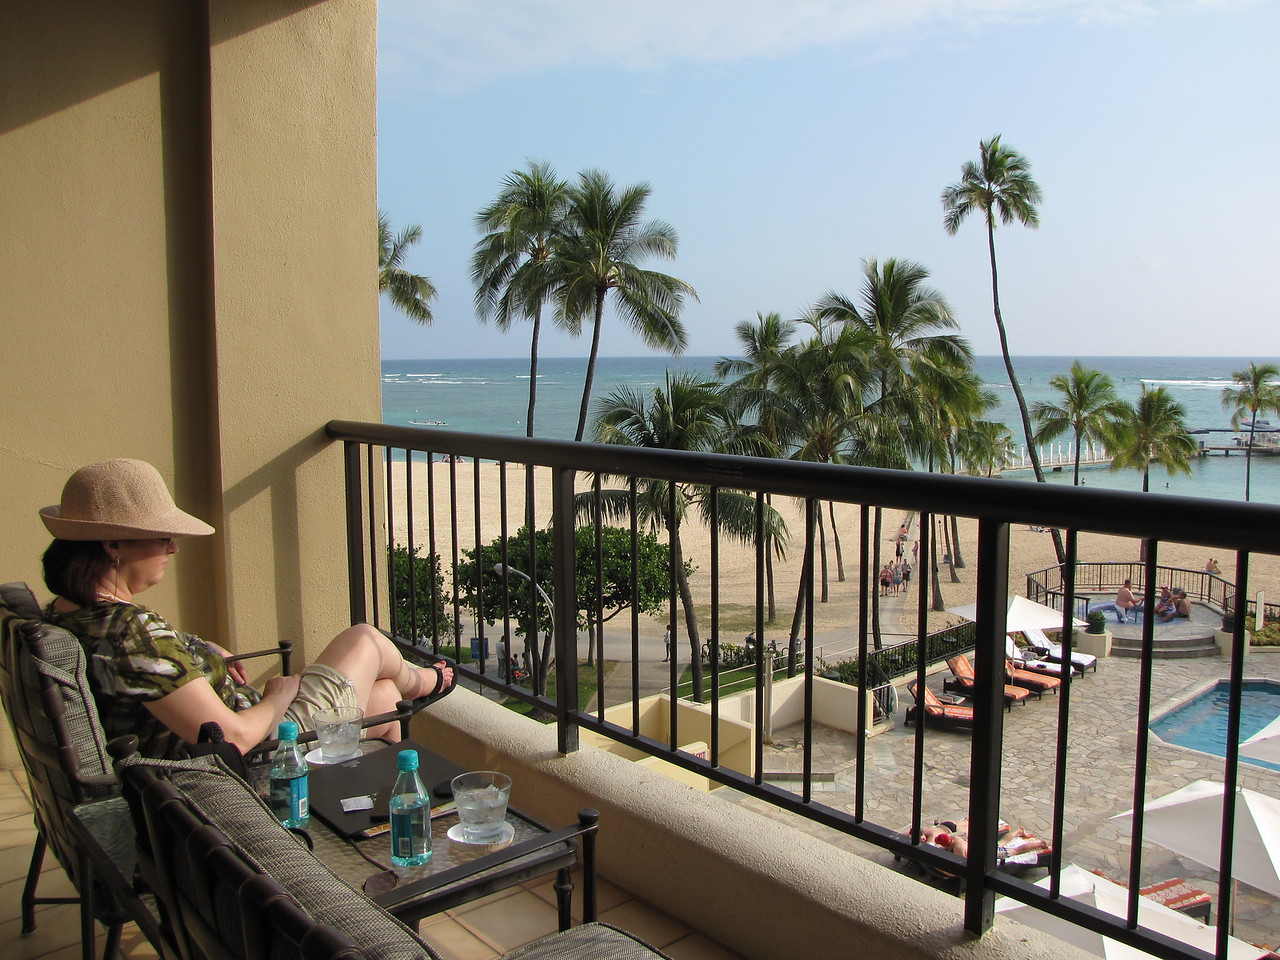 We take a break from unpacking and enjoy the view from the lanai.